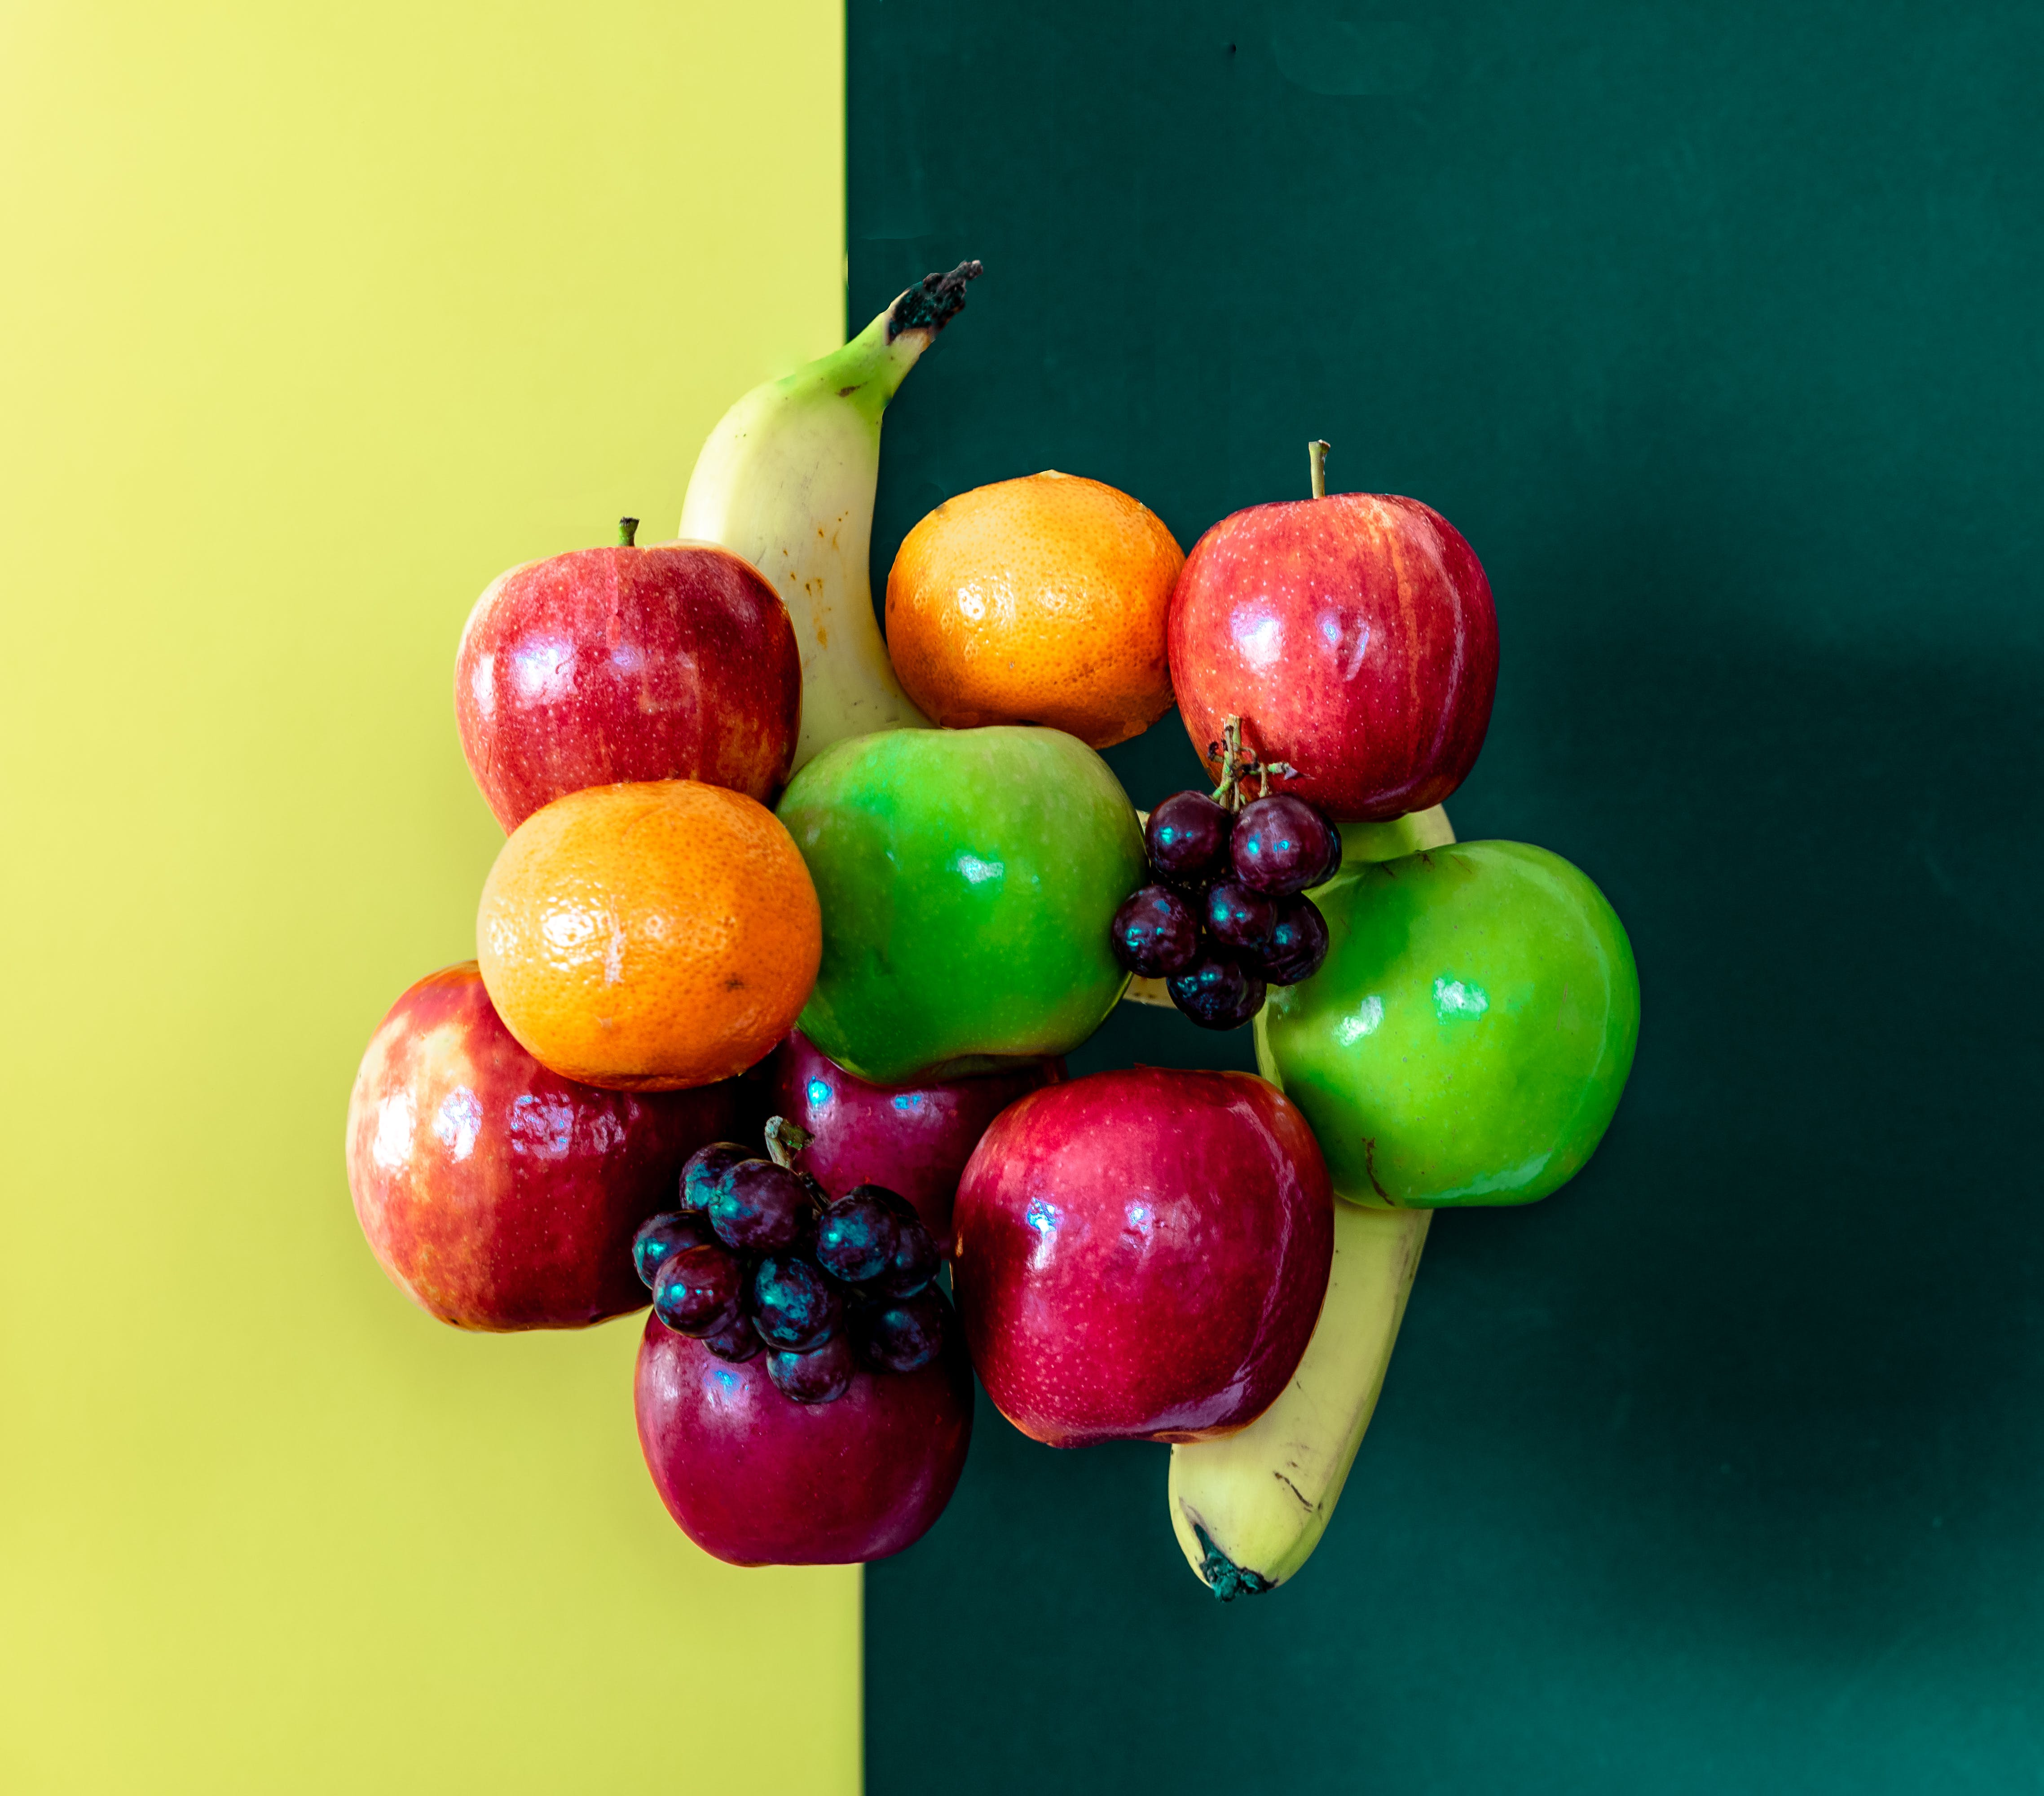 Free stock photo of apples, bananas, bright colours, bunch of fruit